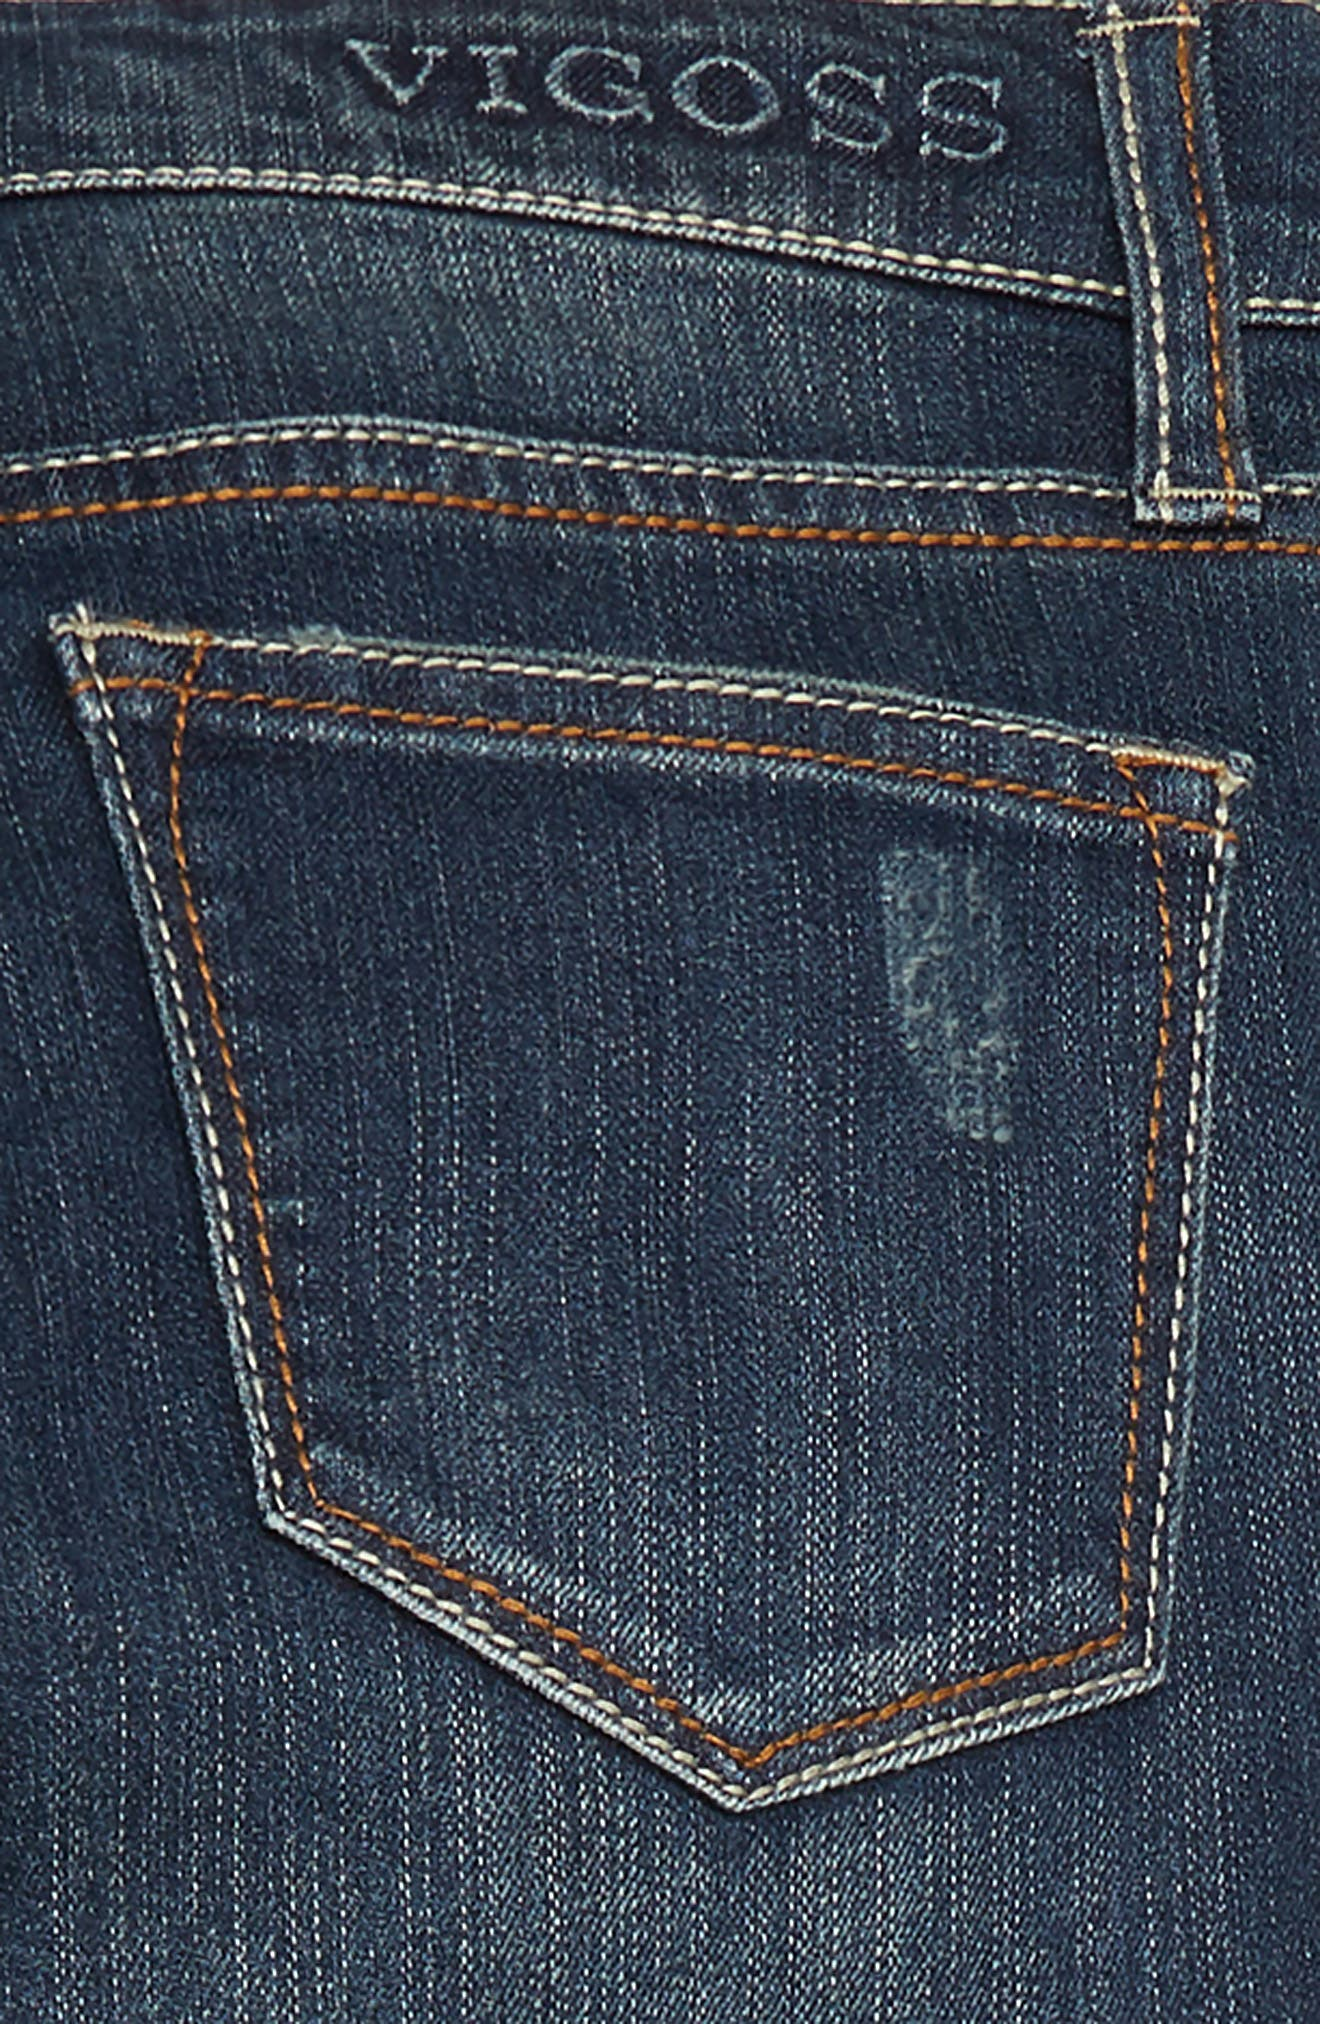 Embroidered Cuff Jeans,                             Alternate thumbnail 3, color,                             DARK MIDNIGHT/ DMN